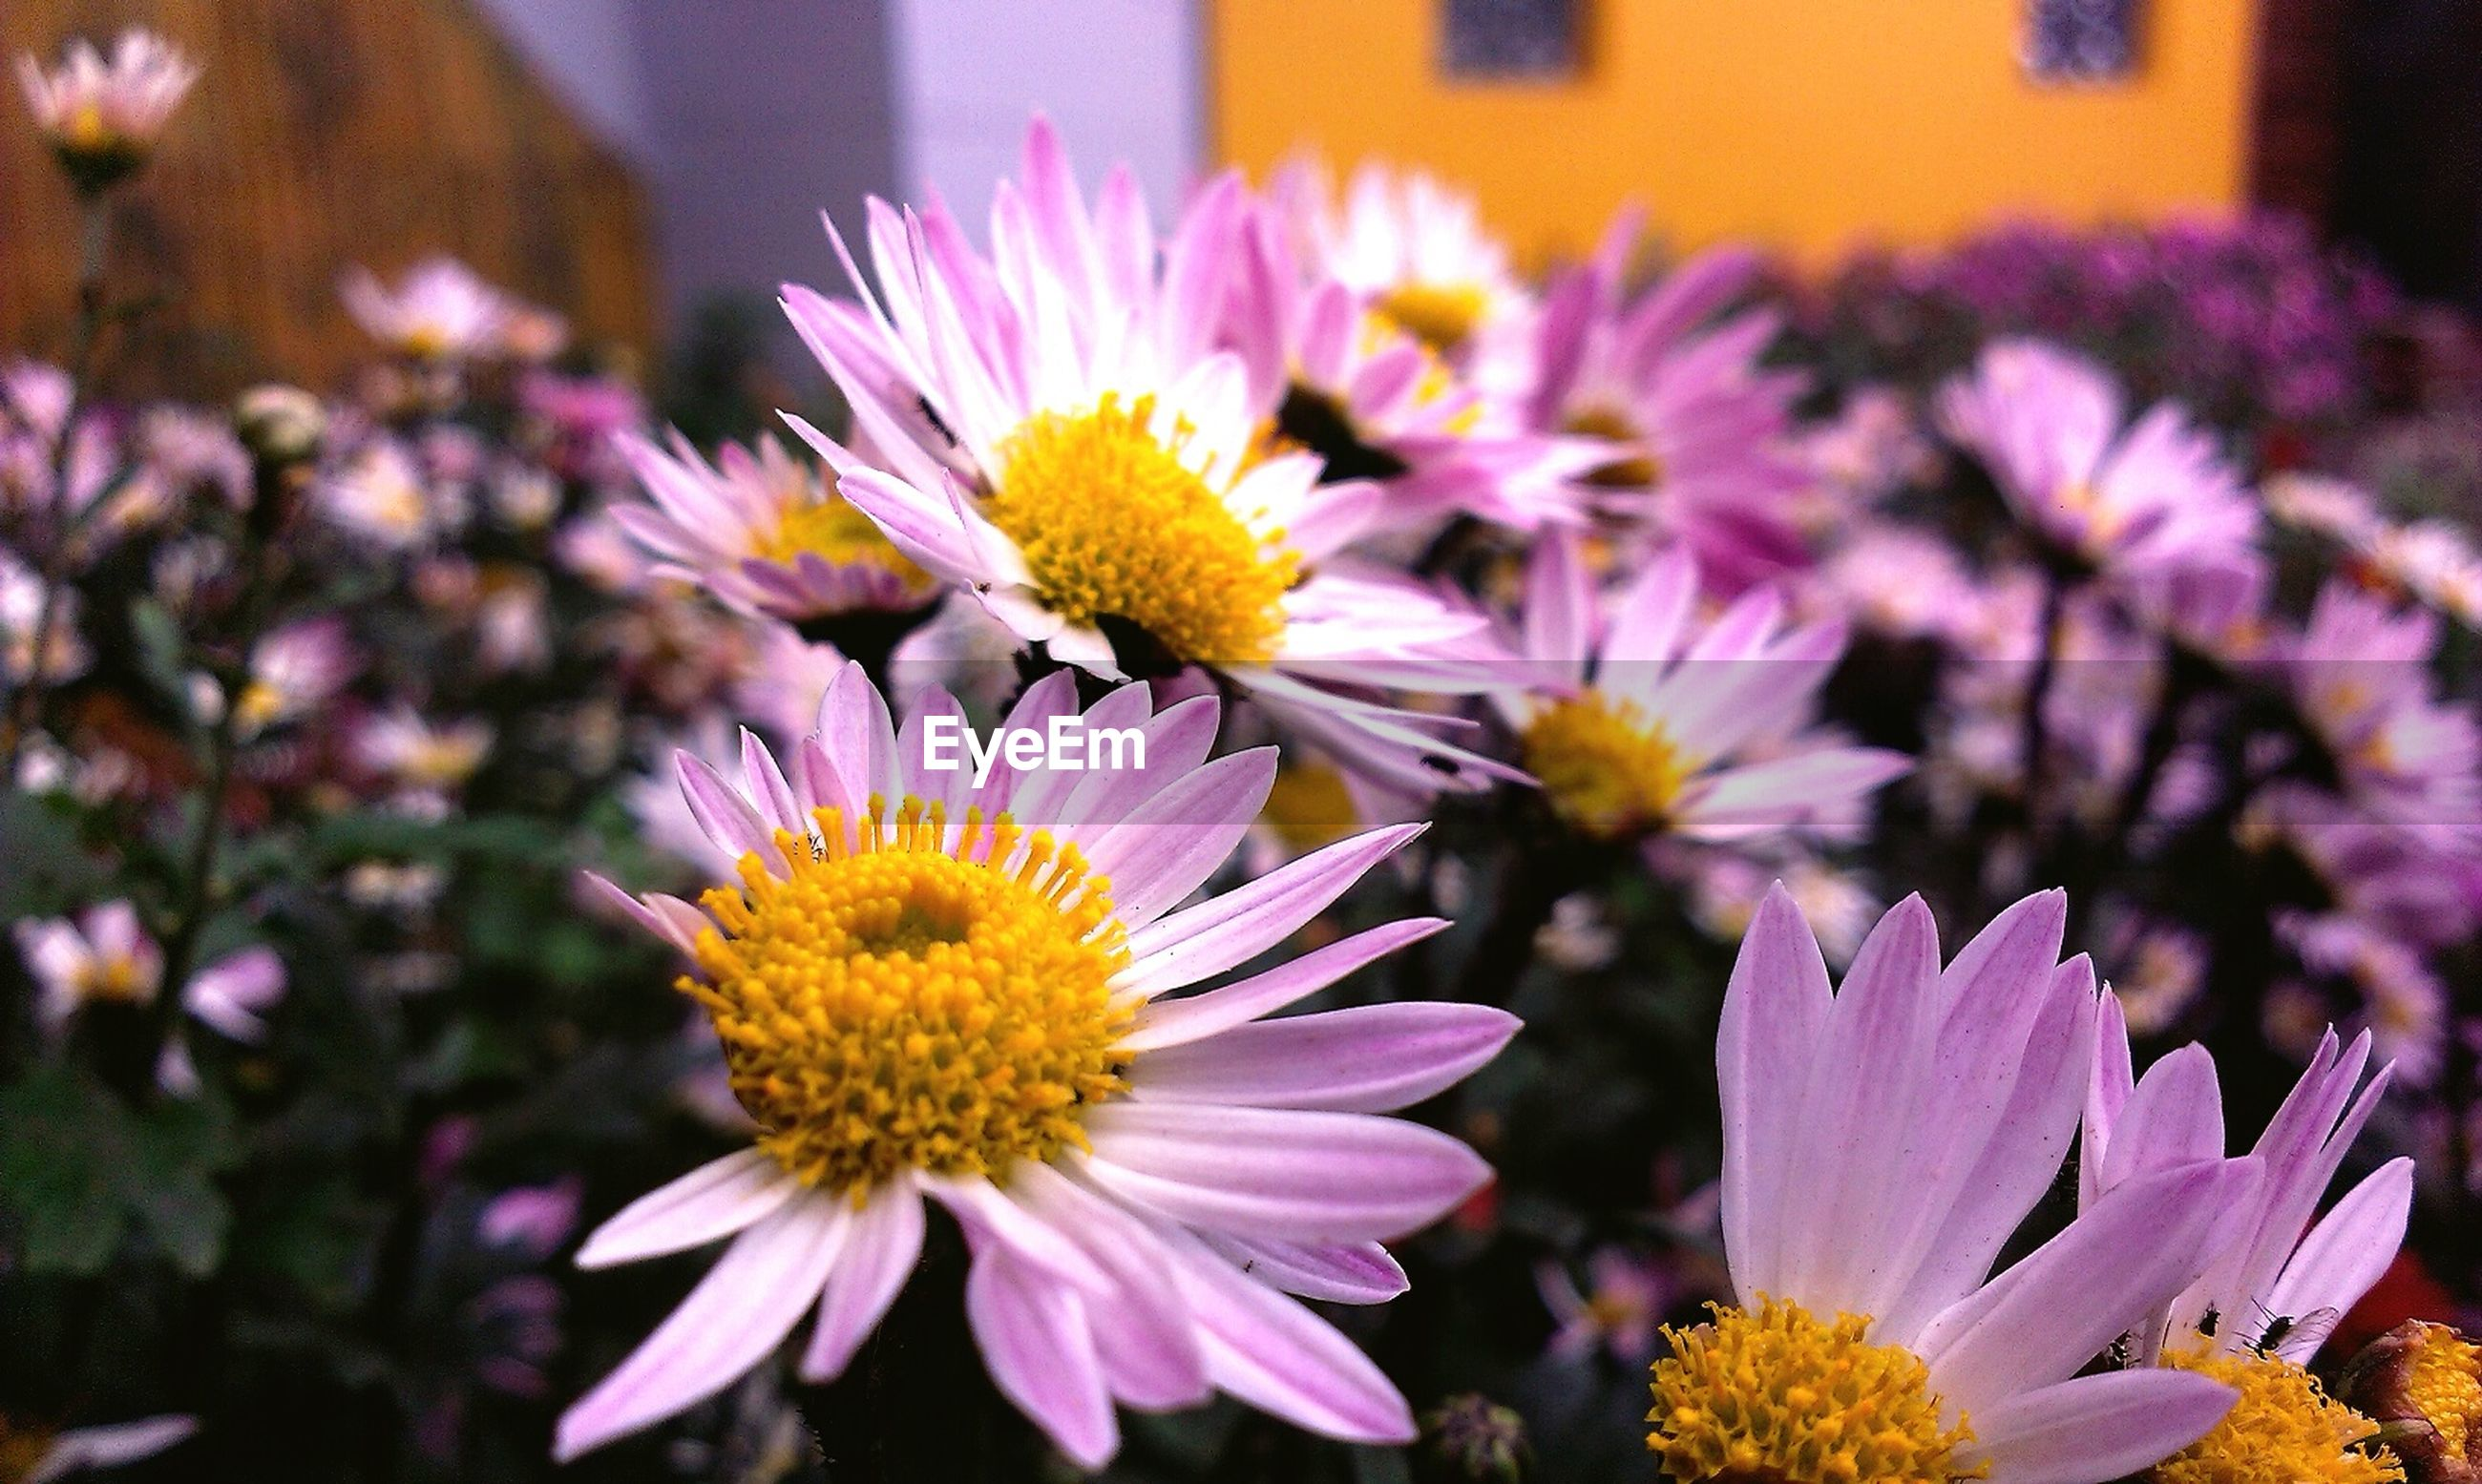 flower, petal, freshness, flower head, fragility, yellow, beauty in nature, pollen, close-up, blooming, growth, focus on foreground, purple, nature, plant, in bloom, day, no people, high angle view, outdoors